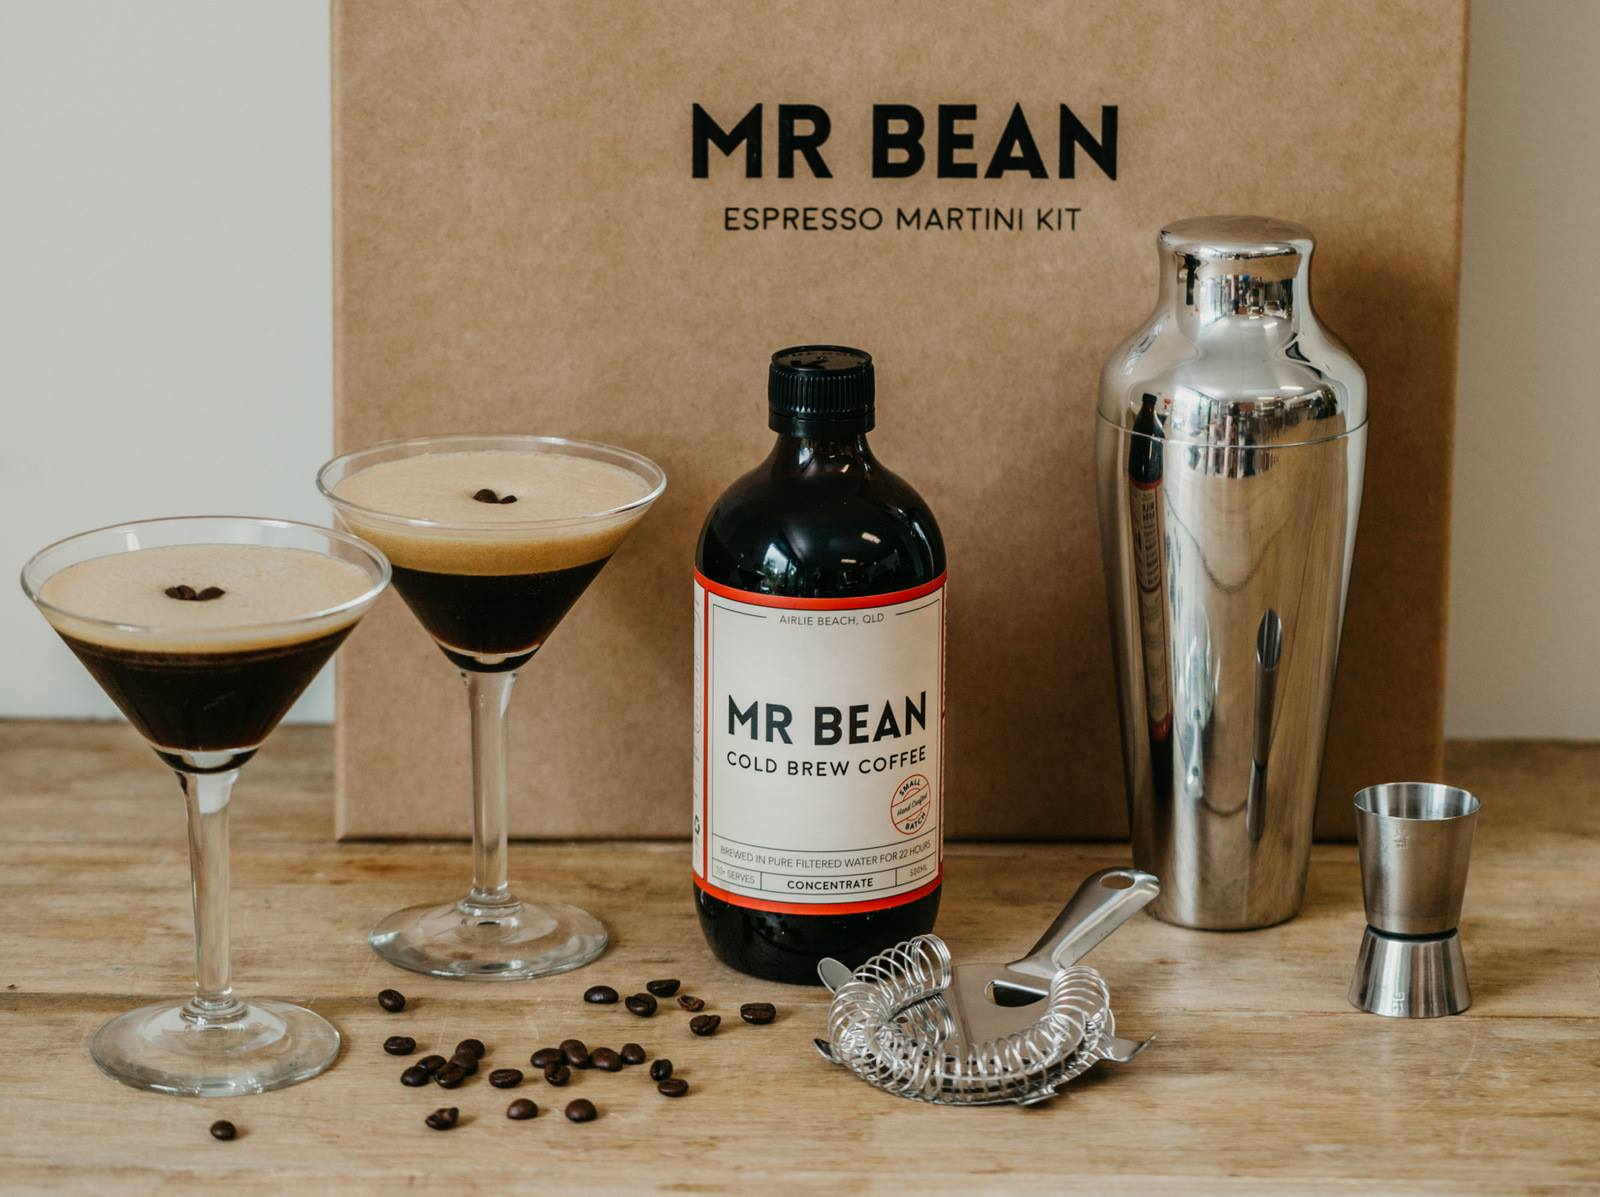 Espresso Martini Cocktail Kit Mr Bean Cold Brew Coffee